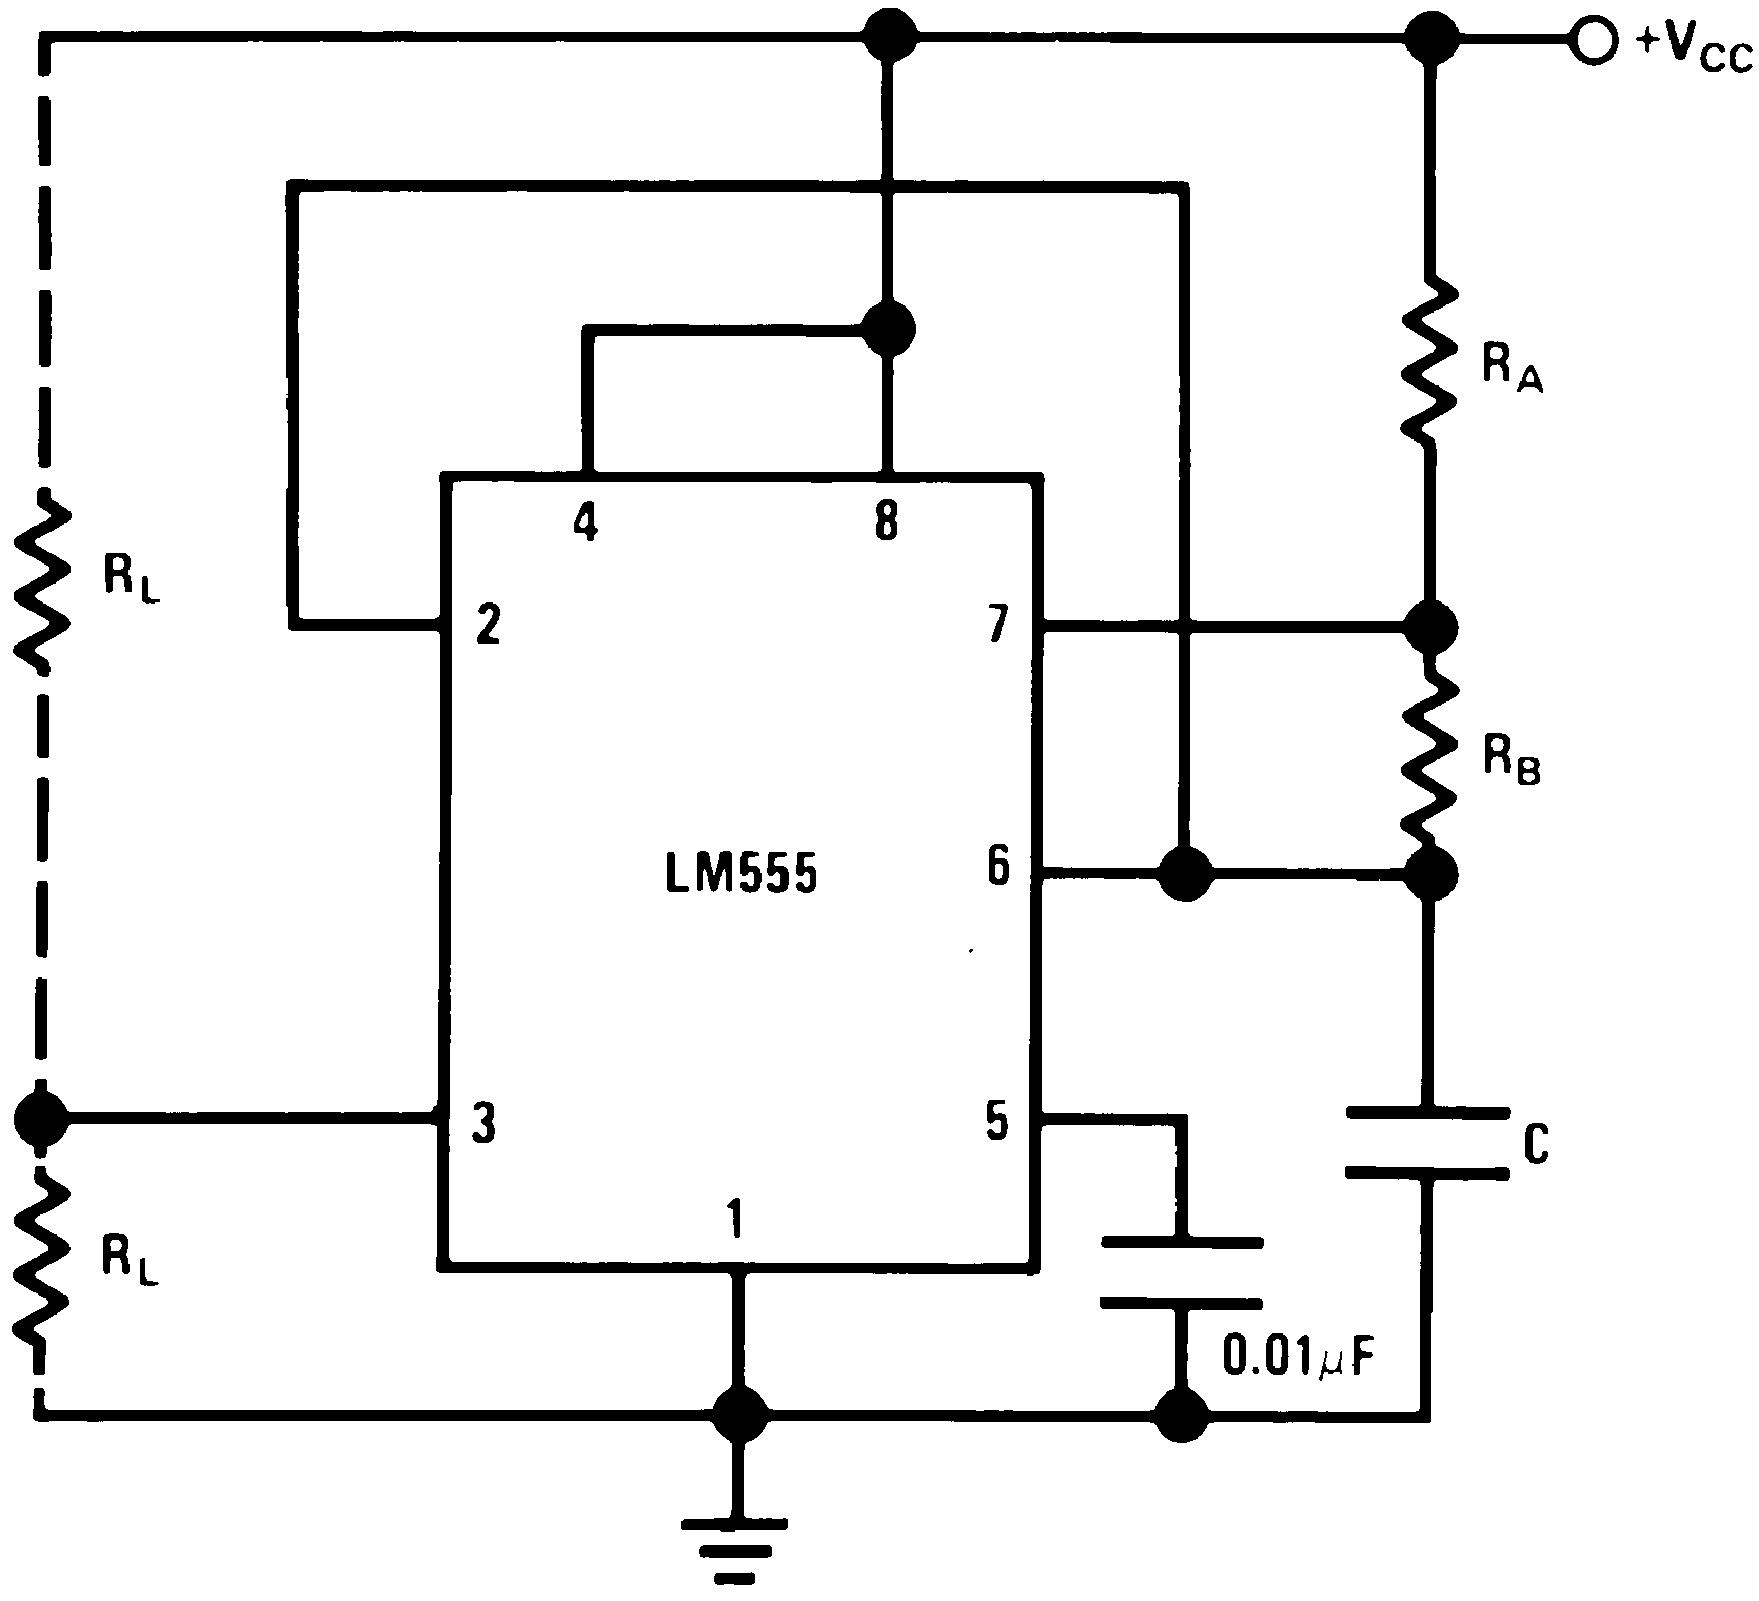 Lm555 The Astable Oscillator Operating Mode In 555 Timer Ic Circuit 00785108 Figure 14 This Of Operation